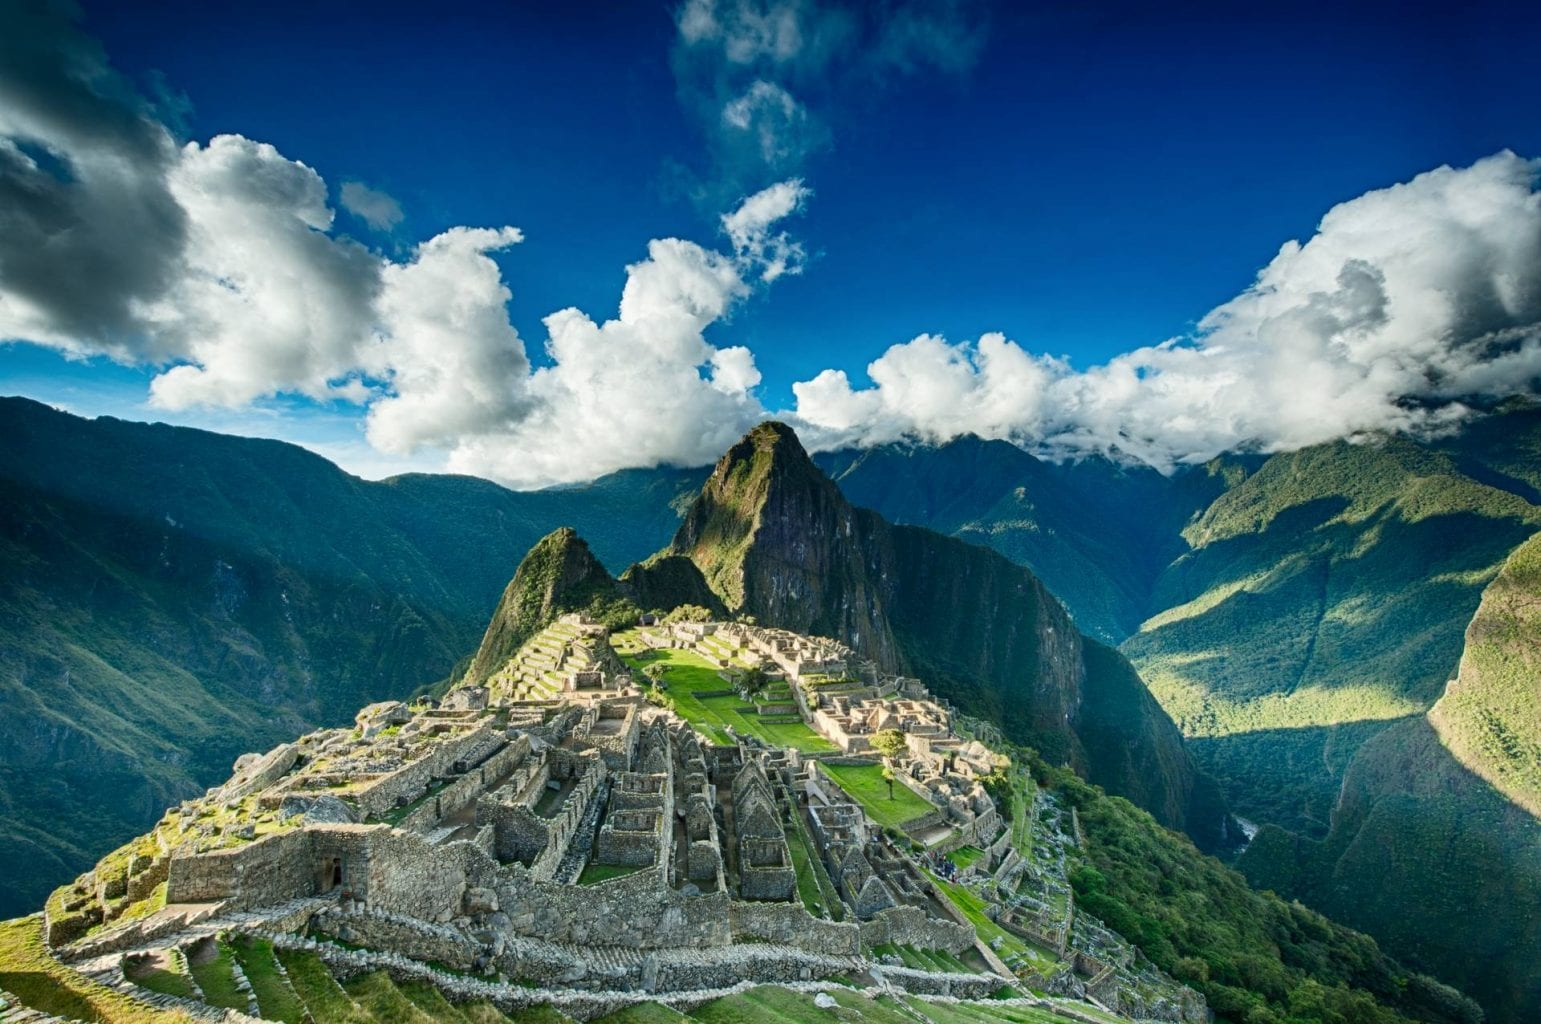 One of the greatest sights on planet Earth - Machu Pichu.